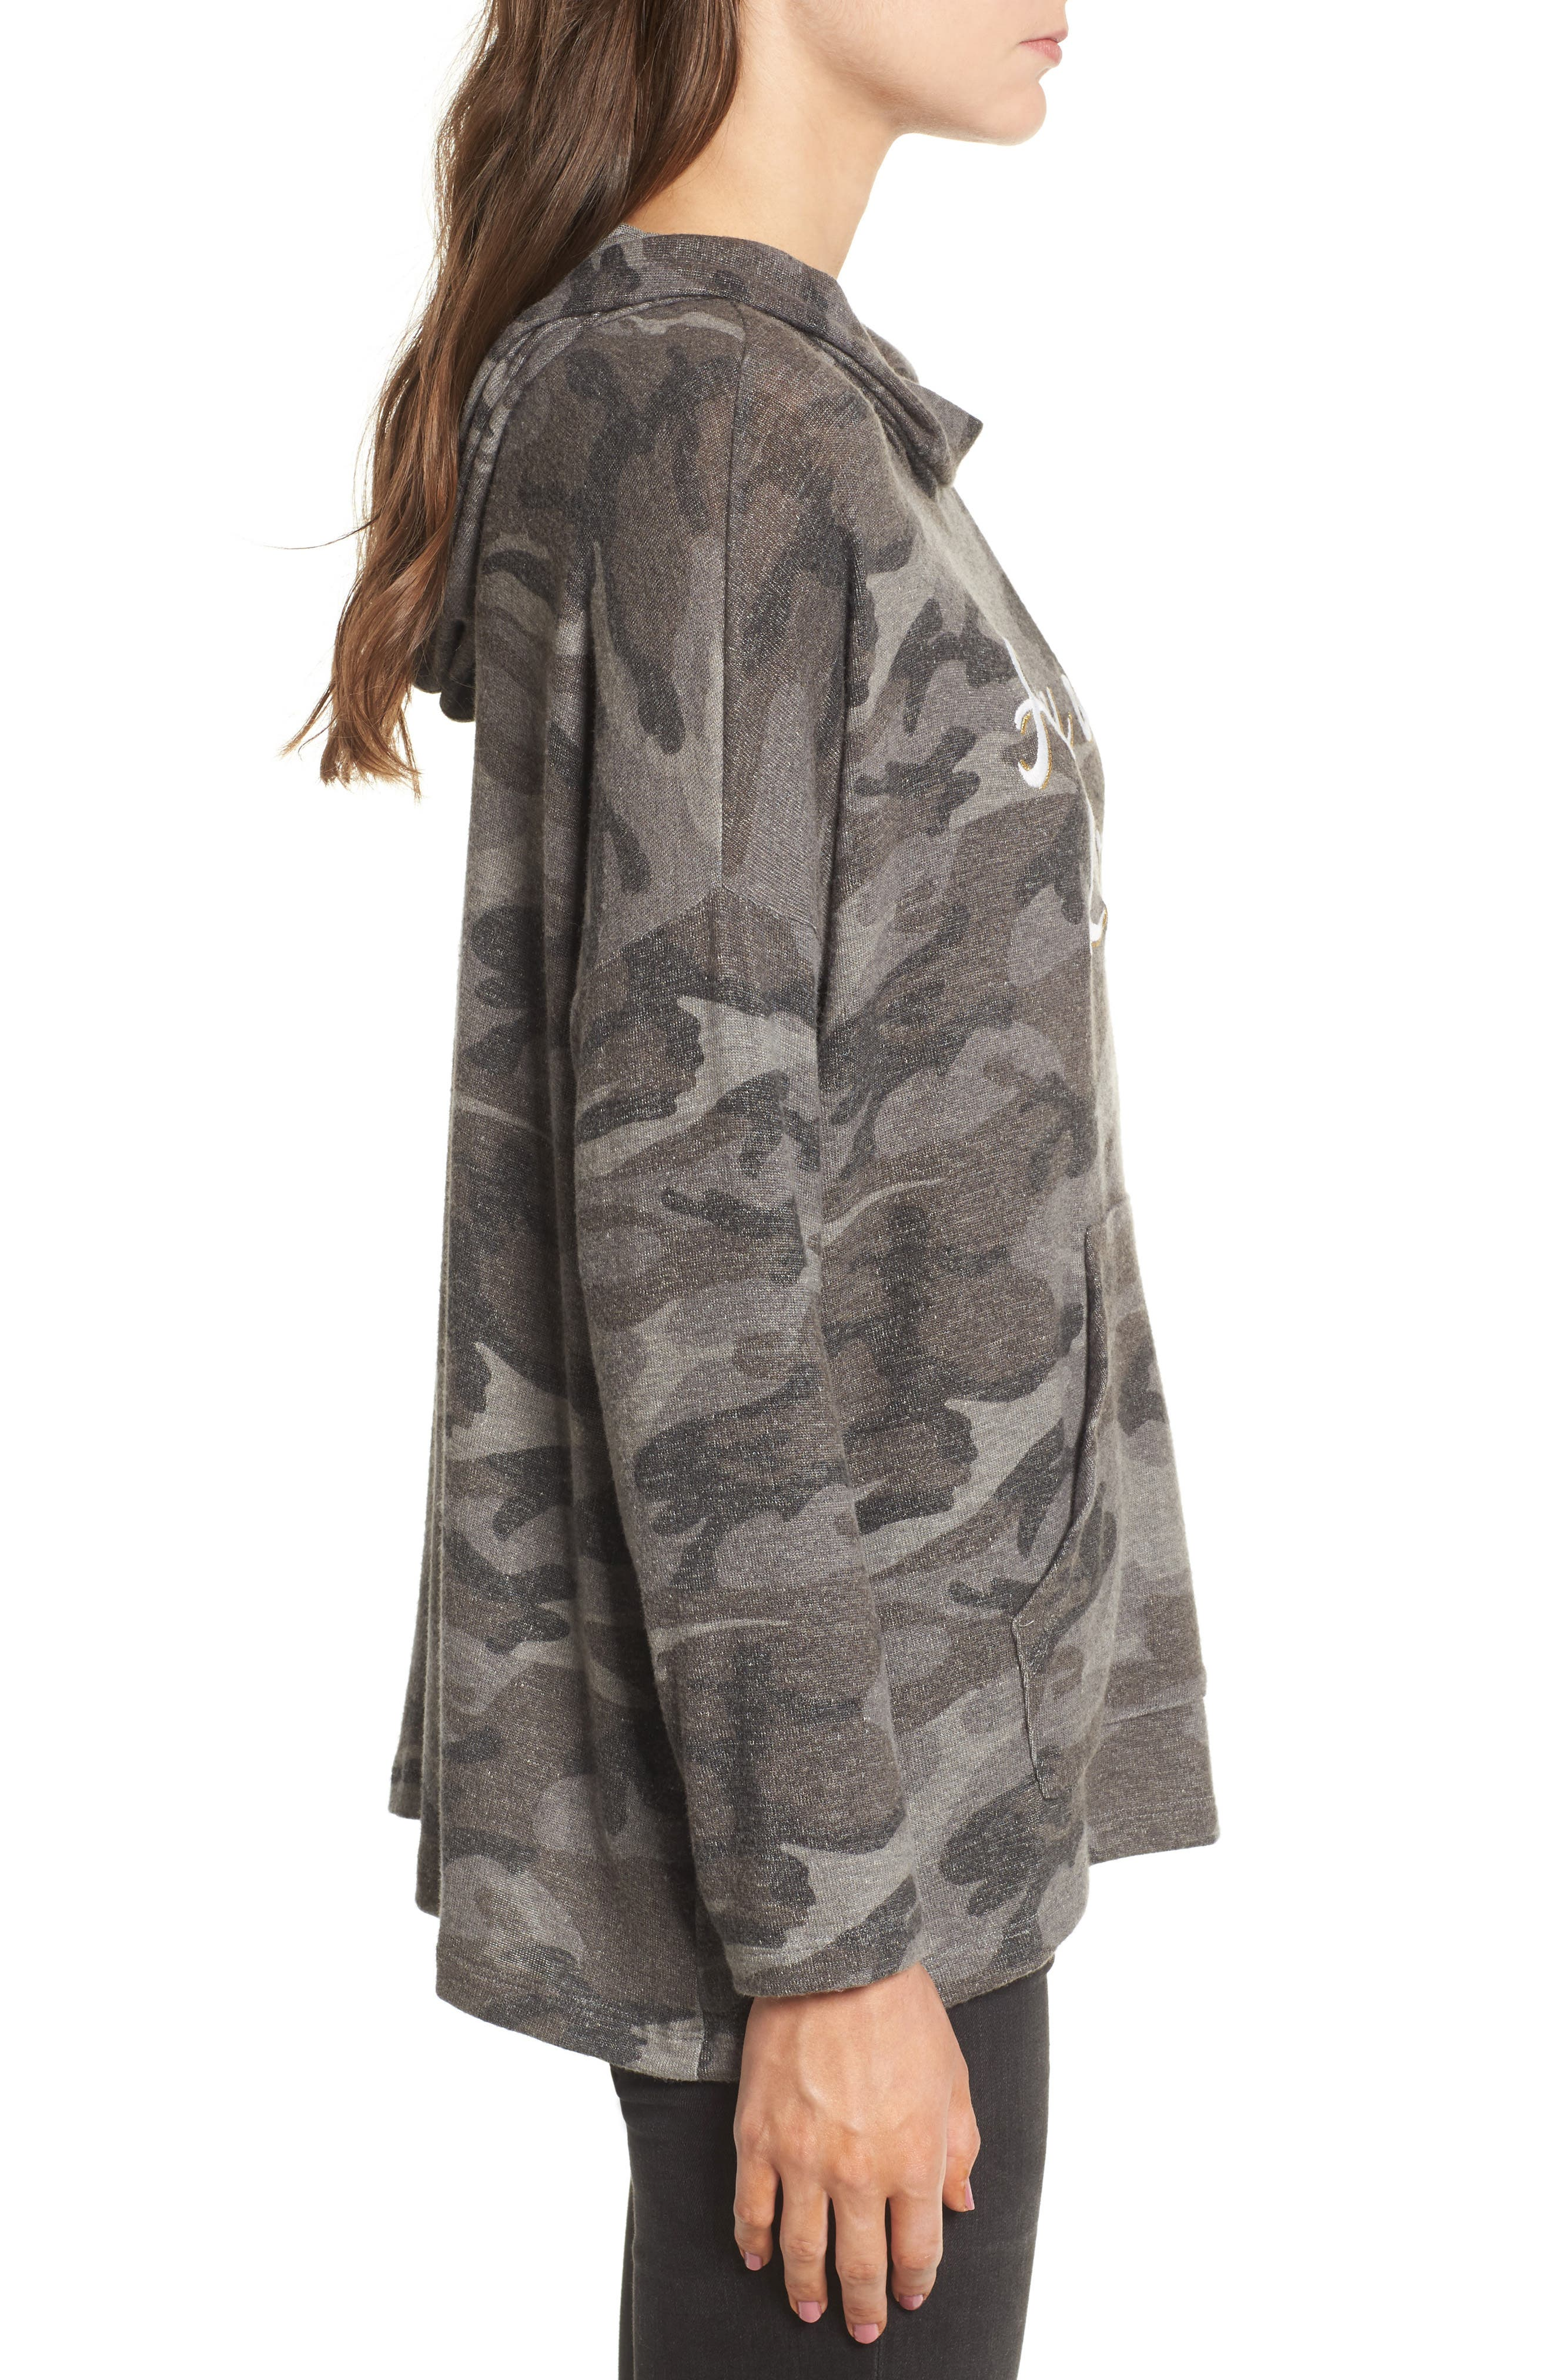 Army of Lovers Camo Hoodie,                             Alternate thumbnail 3, color,                             Charcoal Camo